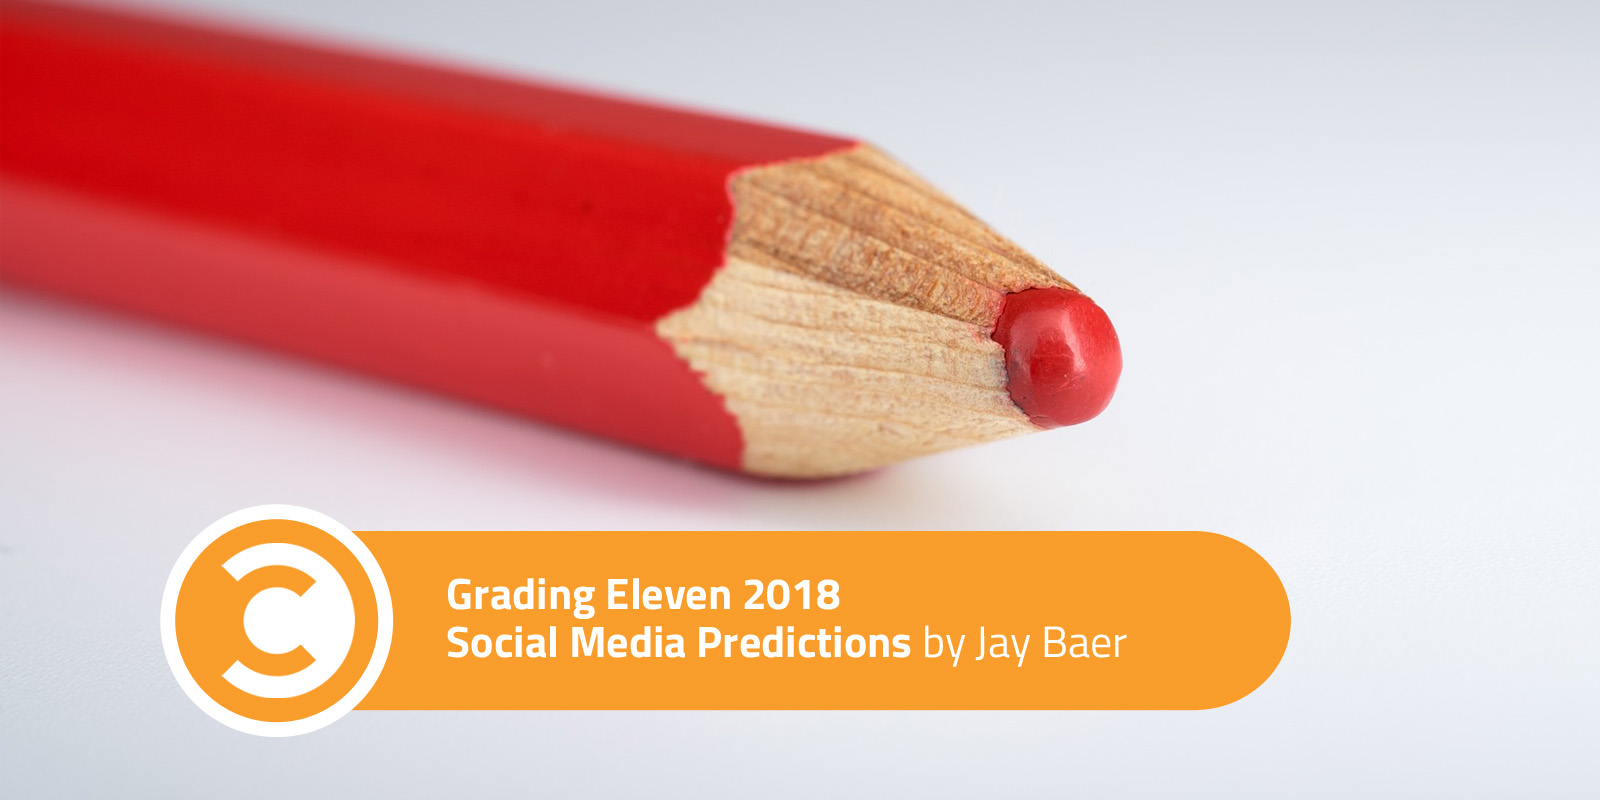 Grading Eleven 2018 Social Media Predictions